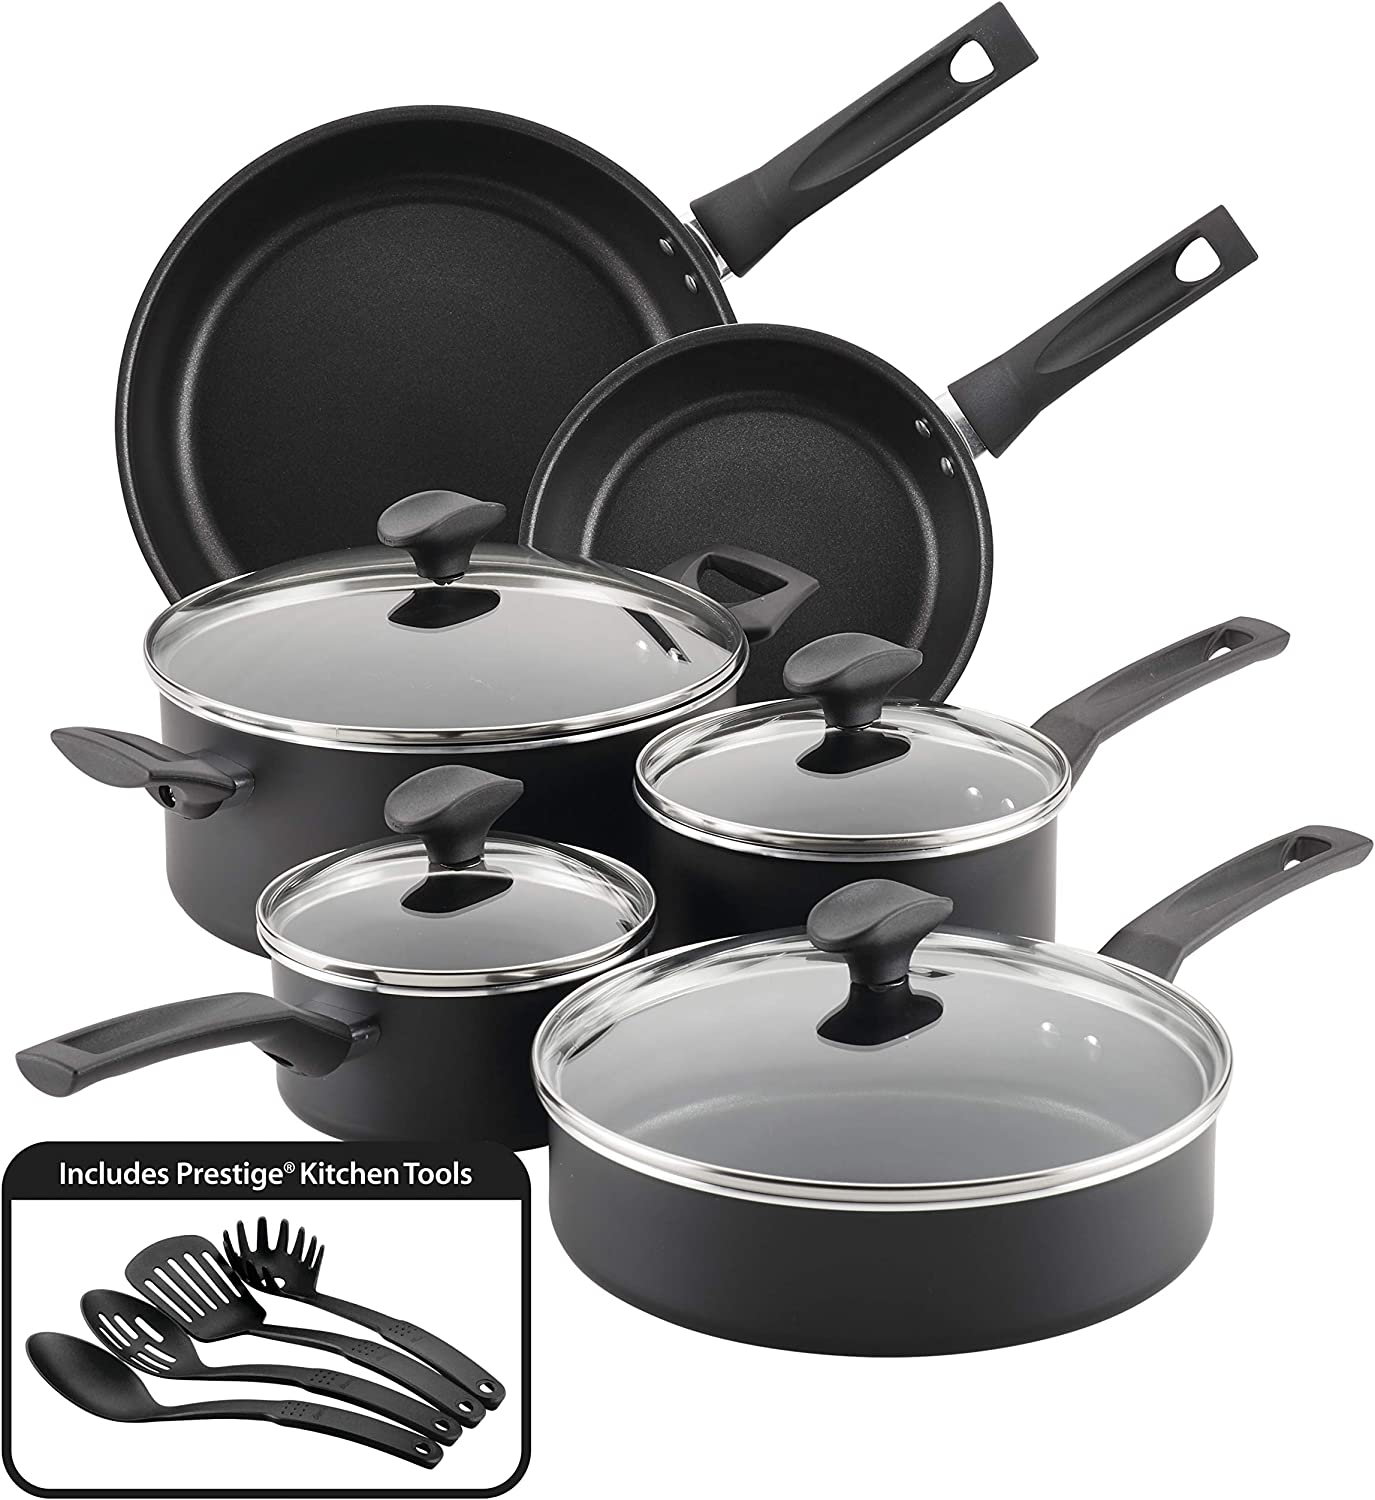 Farberware 10605 Advantage Nonstick Cookware Pots and Pans Set, 14 Piece, Black